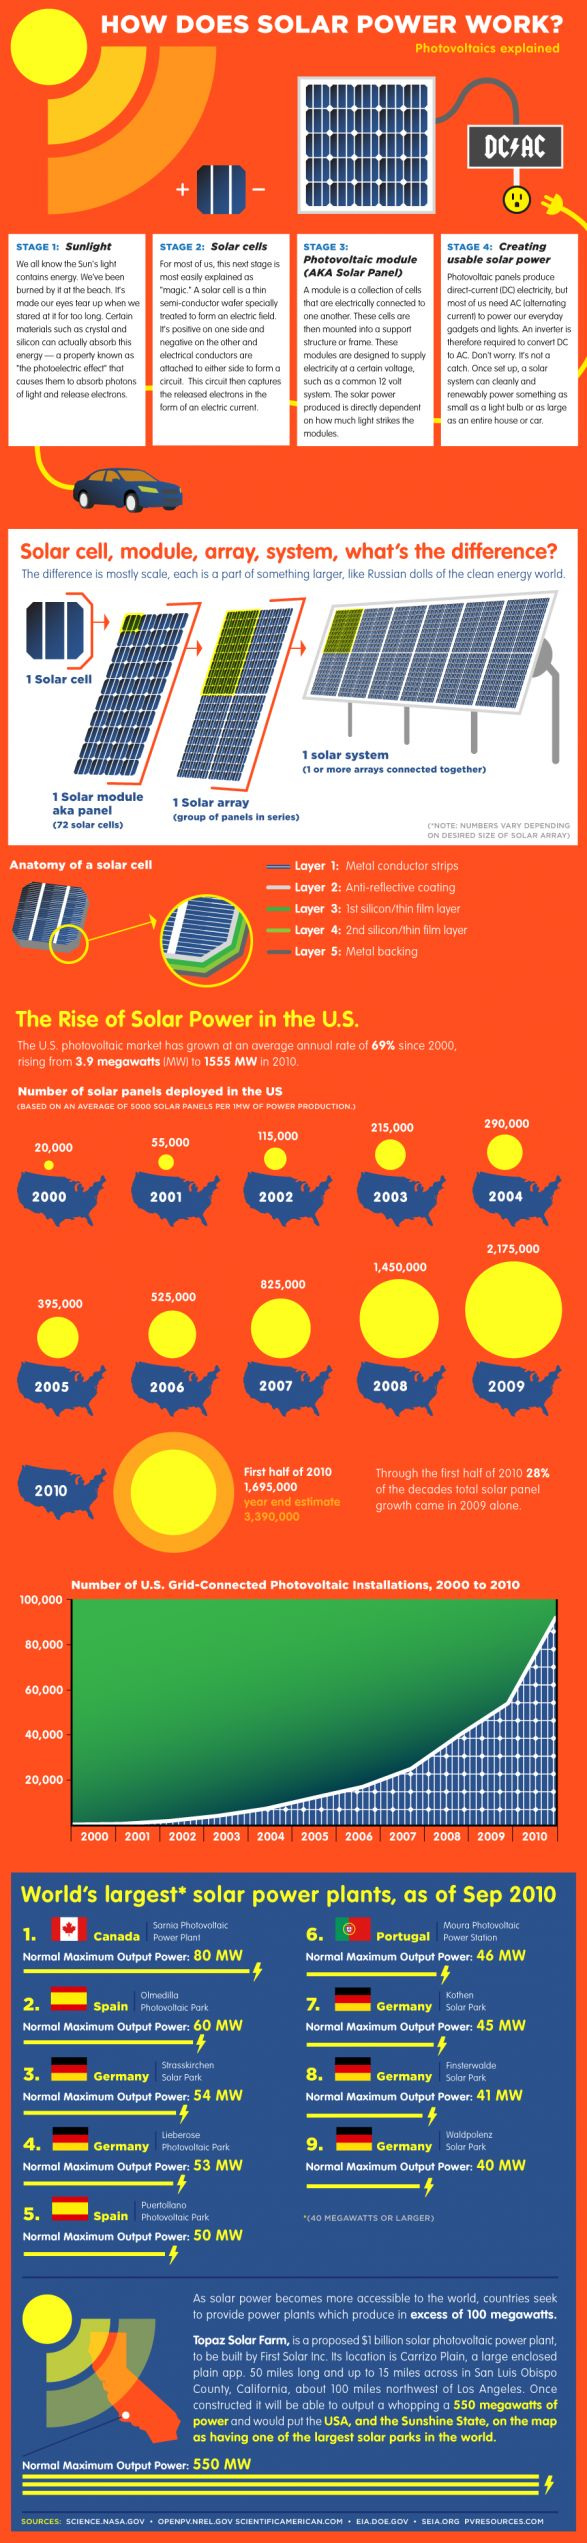 How does #solar work? #infographic